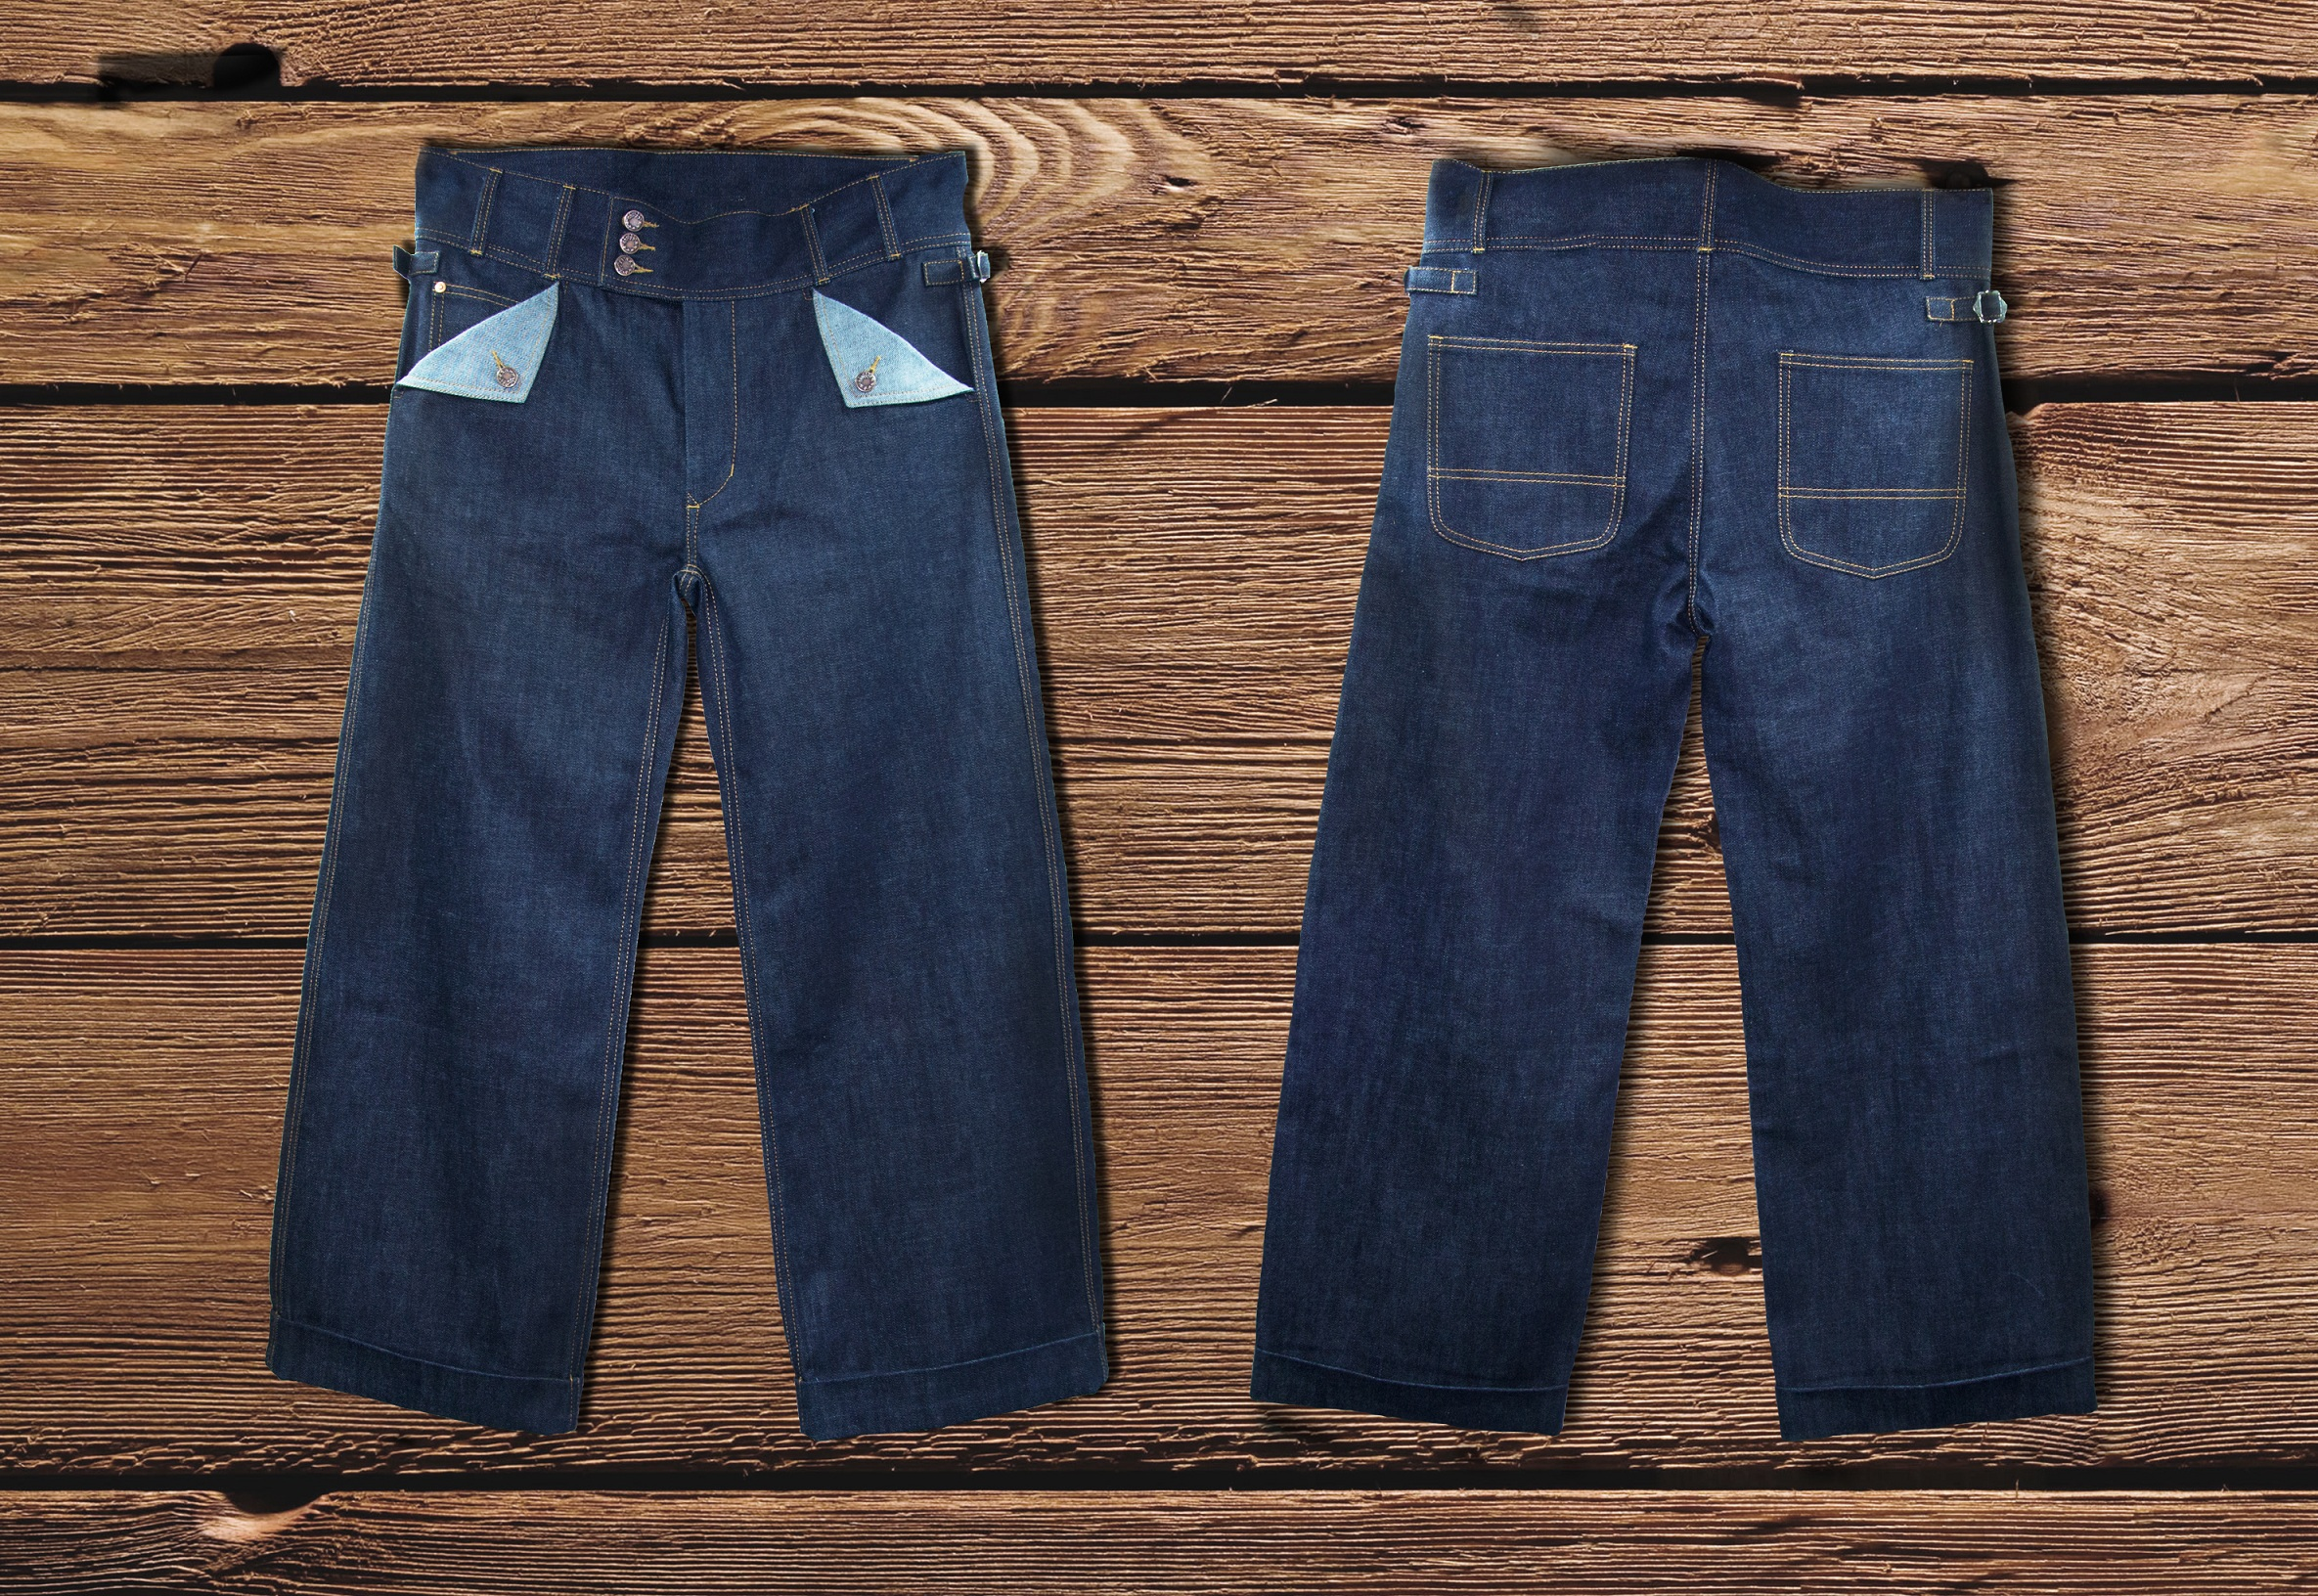 Luxire classic jeans :pocket detailing and side adjusters